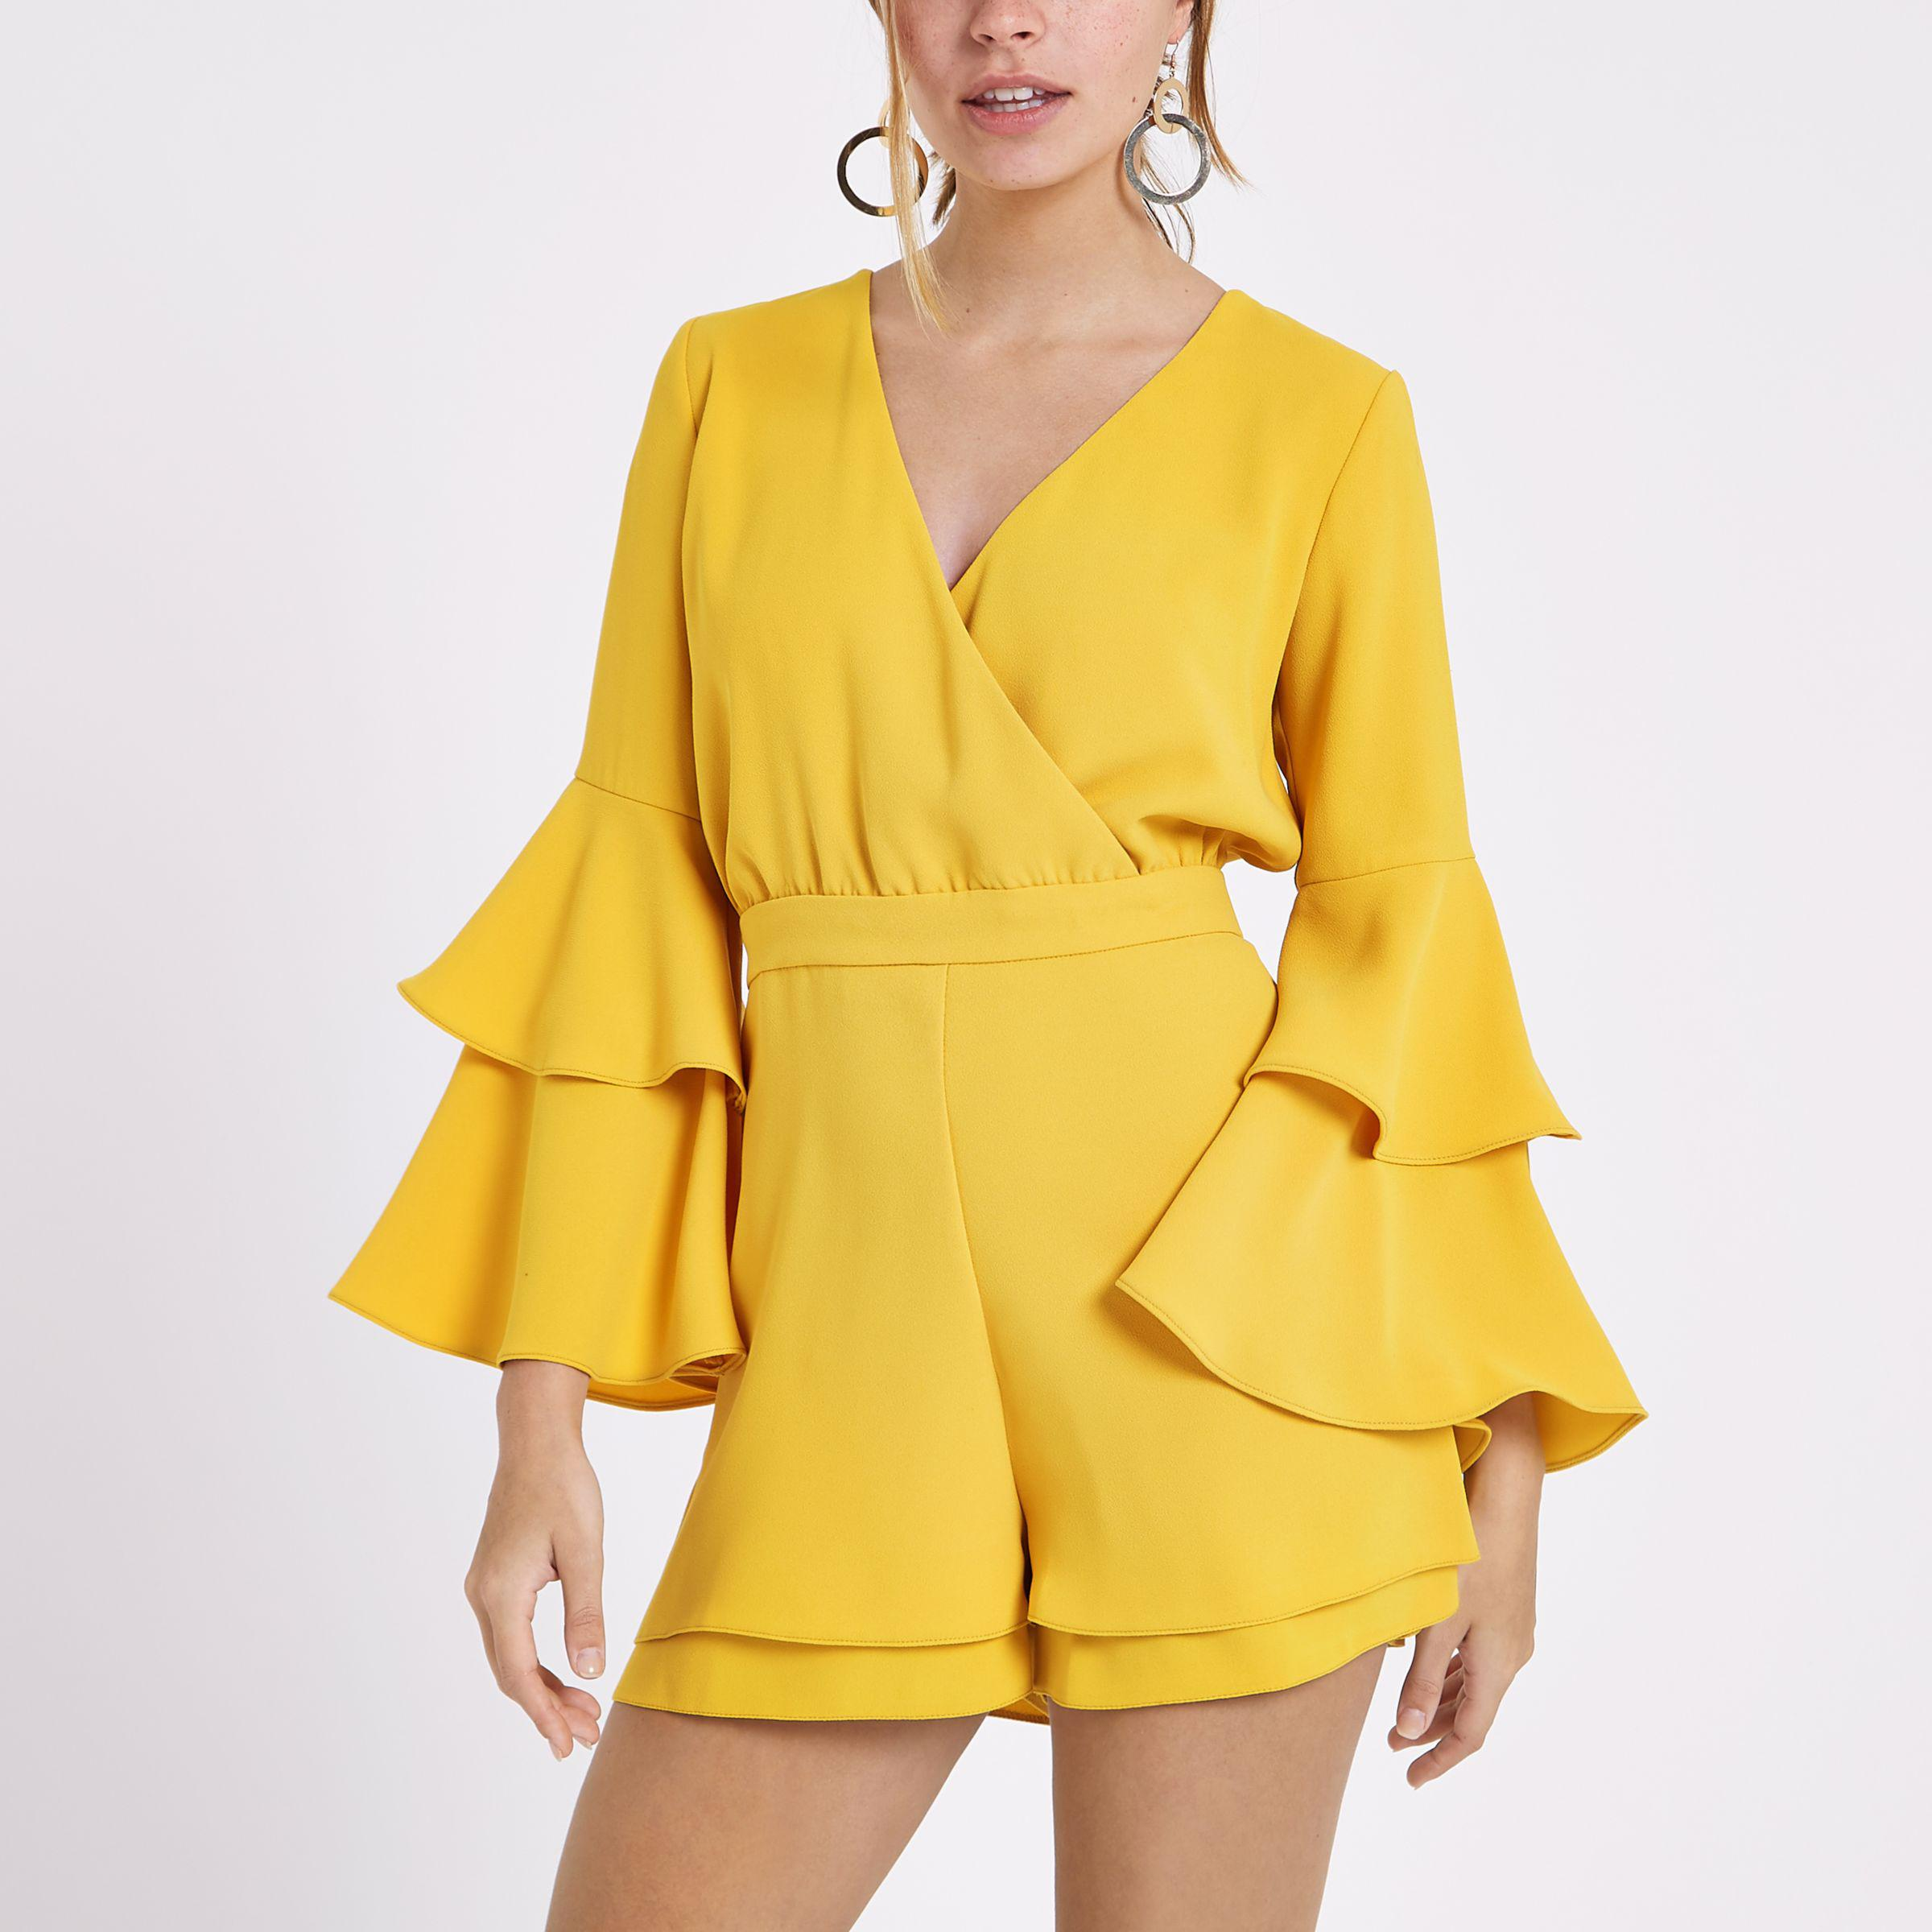 4d175e1f7bb River Island Petite Mustard Yellow Frill Sleeve Playsuit in Yellow ...